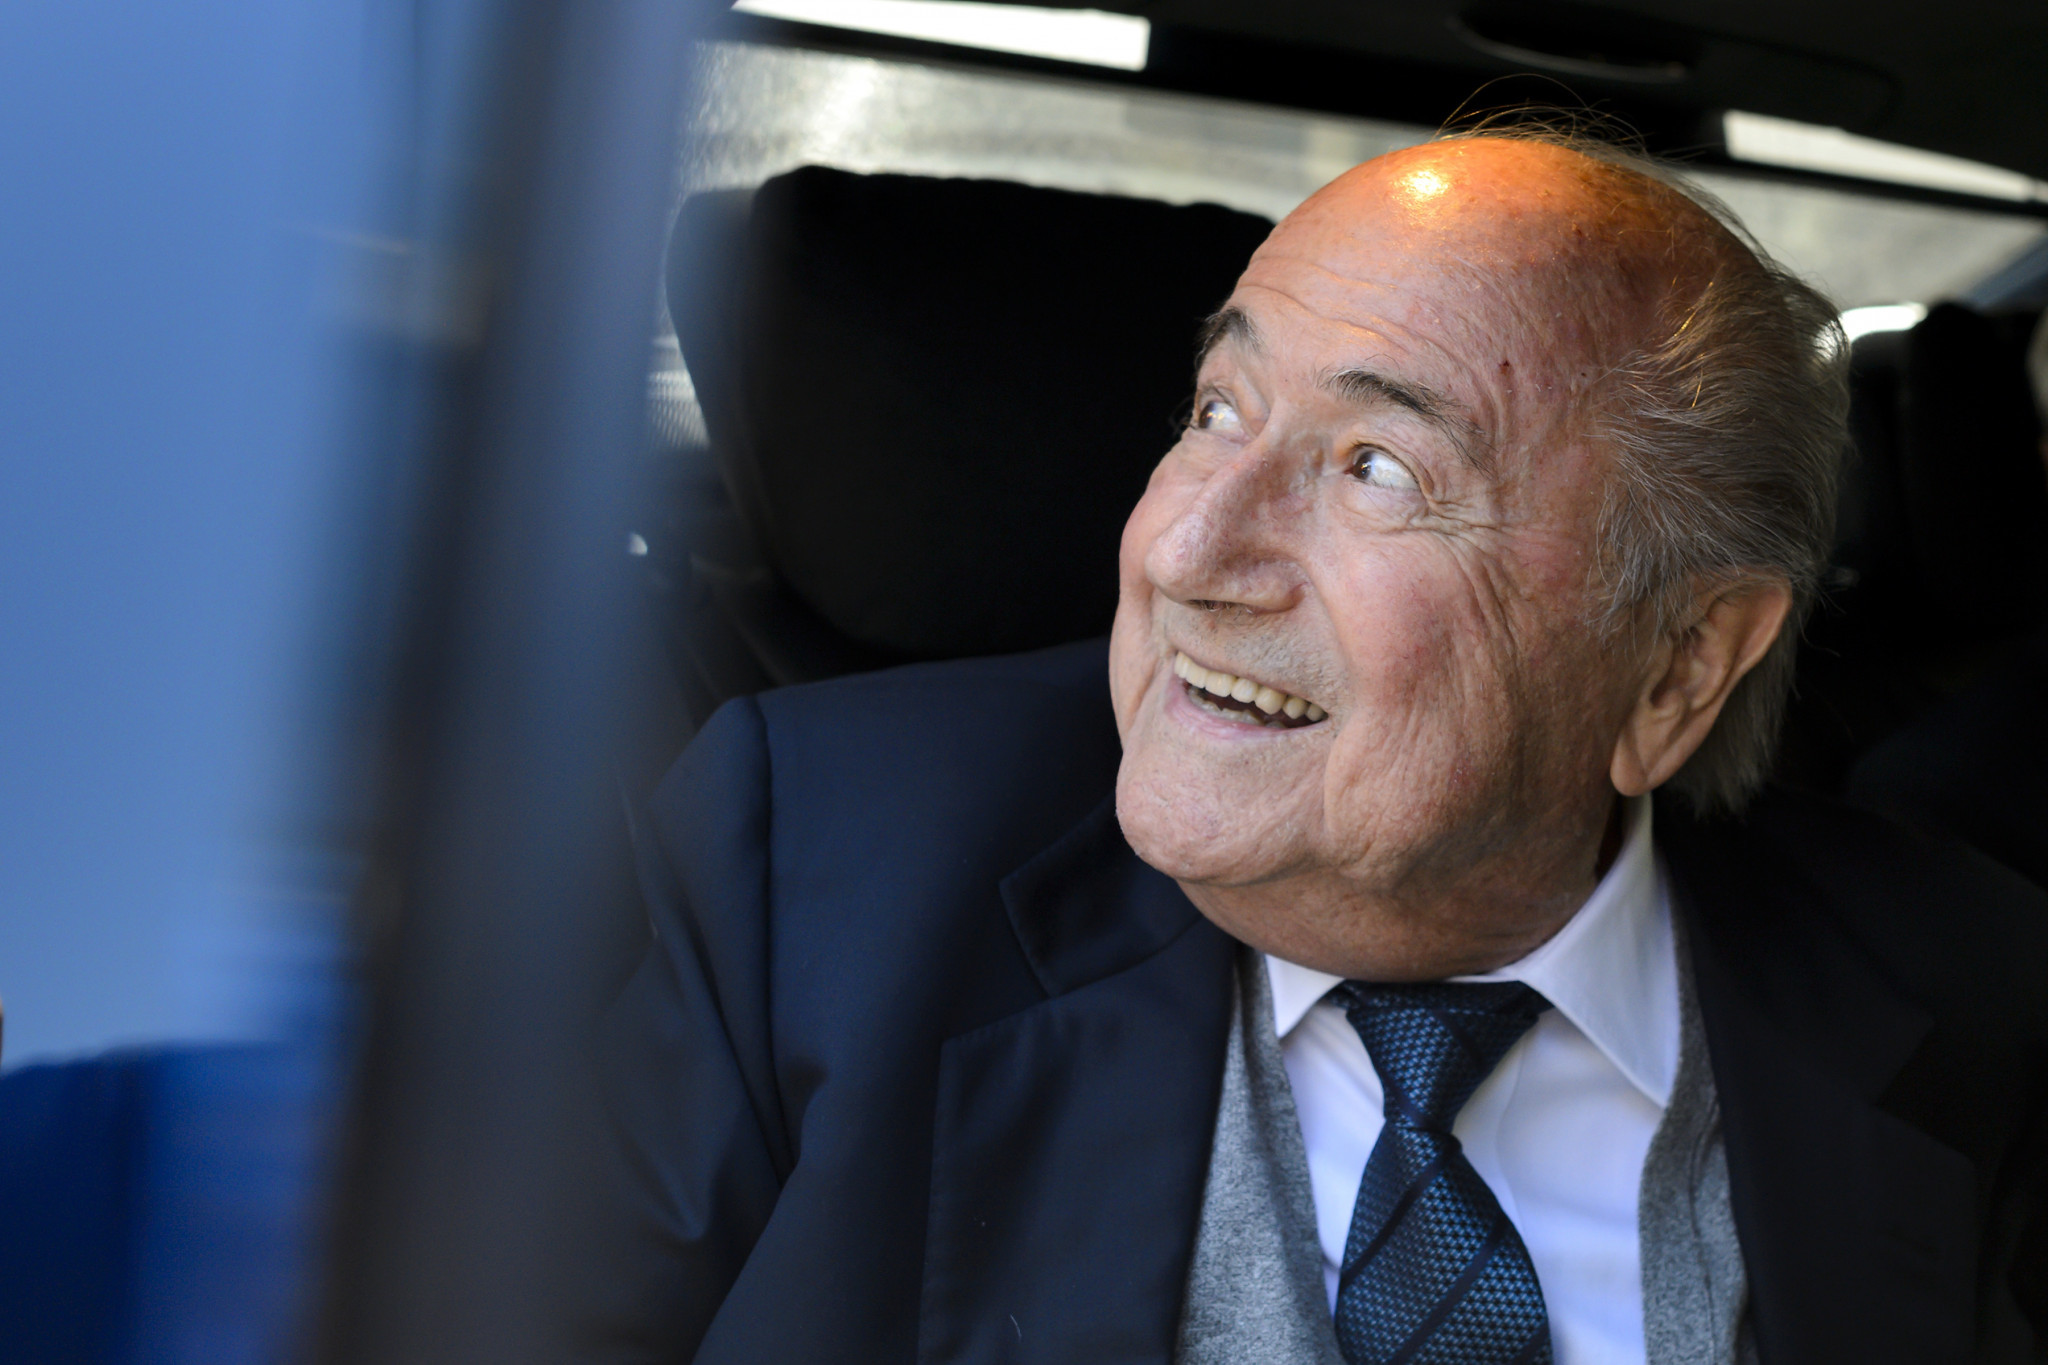 Blatter claims he has new evidence which could help challenge six-year FIFA ban